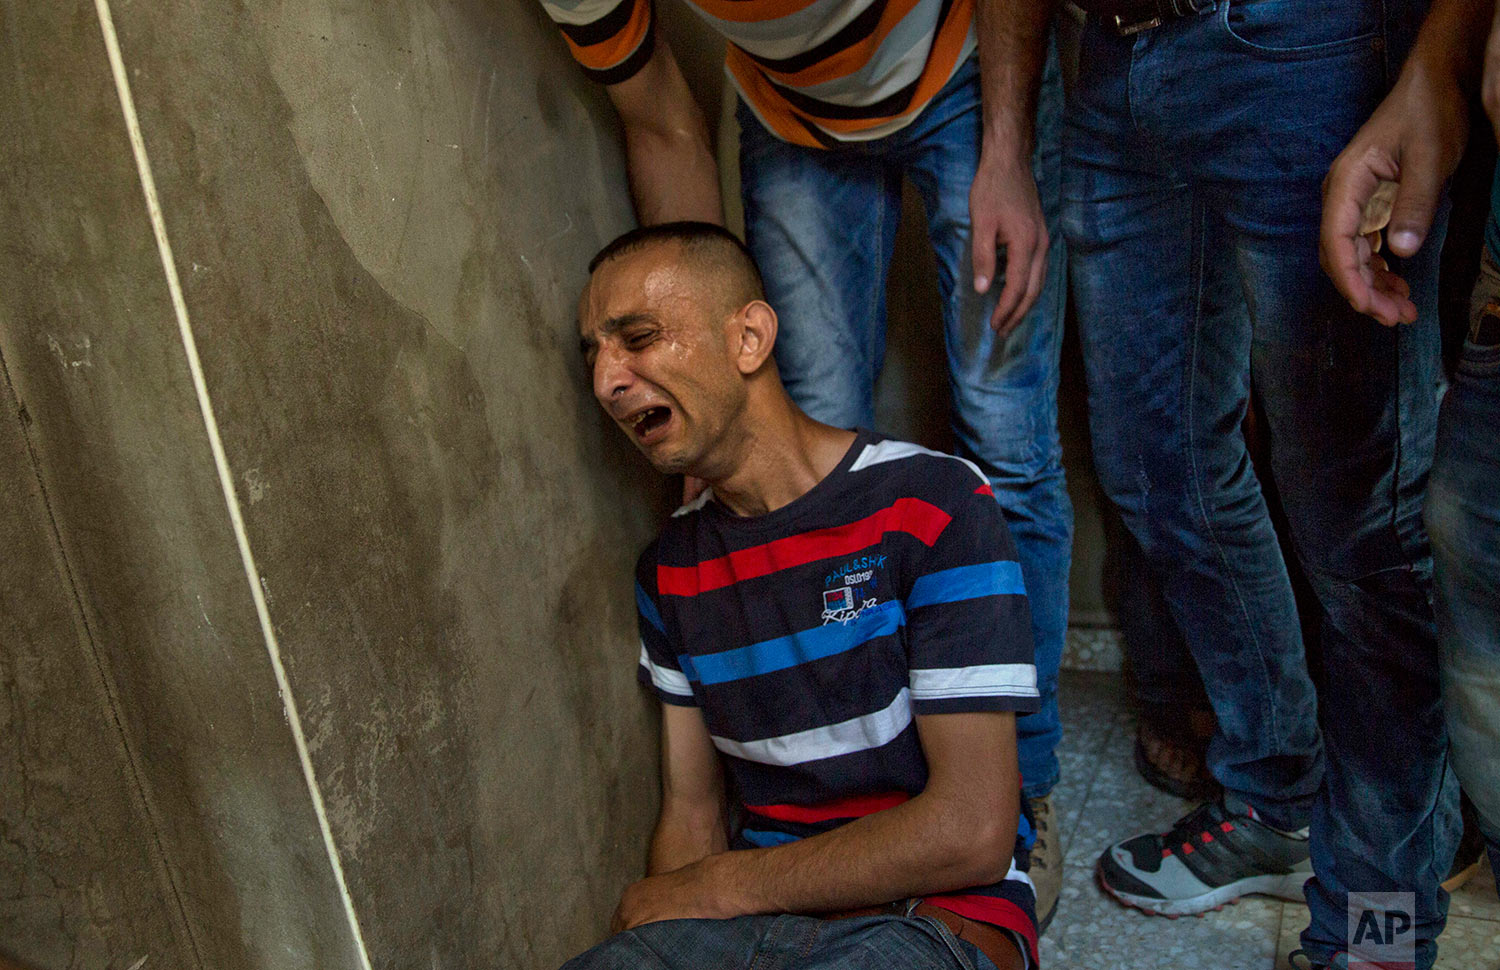 A Palestinian relative of Mohammed Badwan, 27, who was shot and killed by Israeli troops on Friday's ongoing protest at the Gaza Strip's border with Israel, mourns at the family home during his funeral in Gaza City, Saturday, July 21, 2018. (AP Photo/Khalil Hamra)